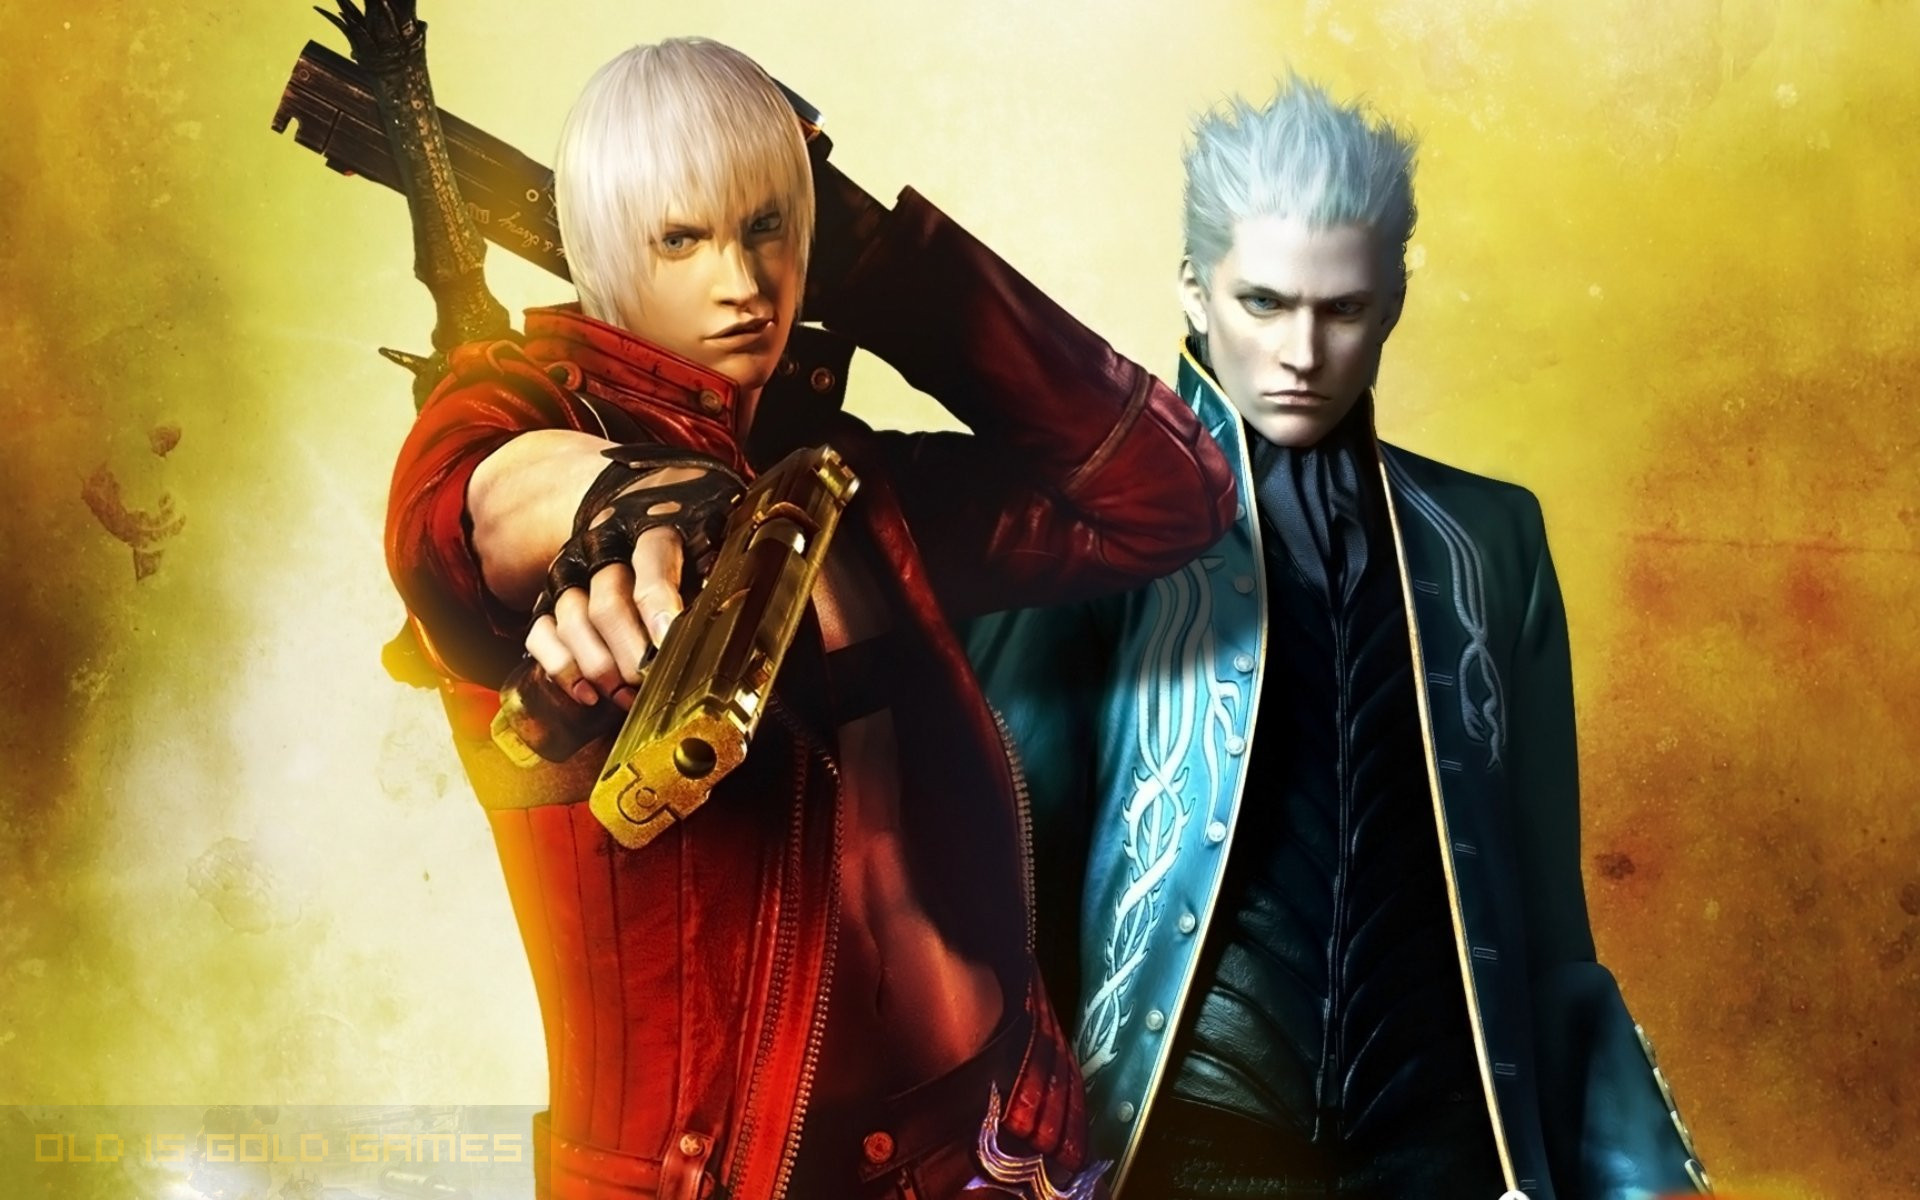 Devil May Cry 3 Dante's Awakening Download For Free